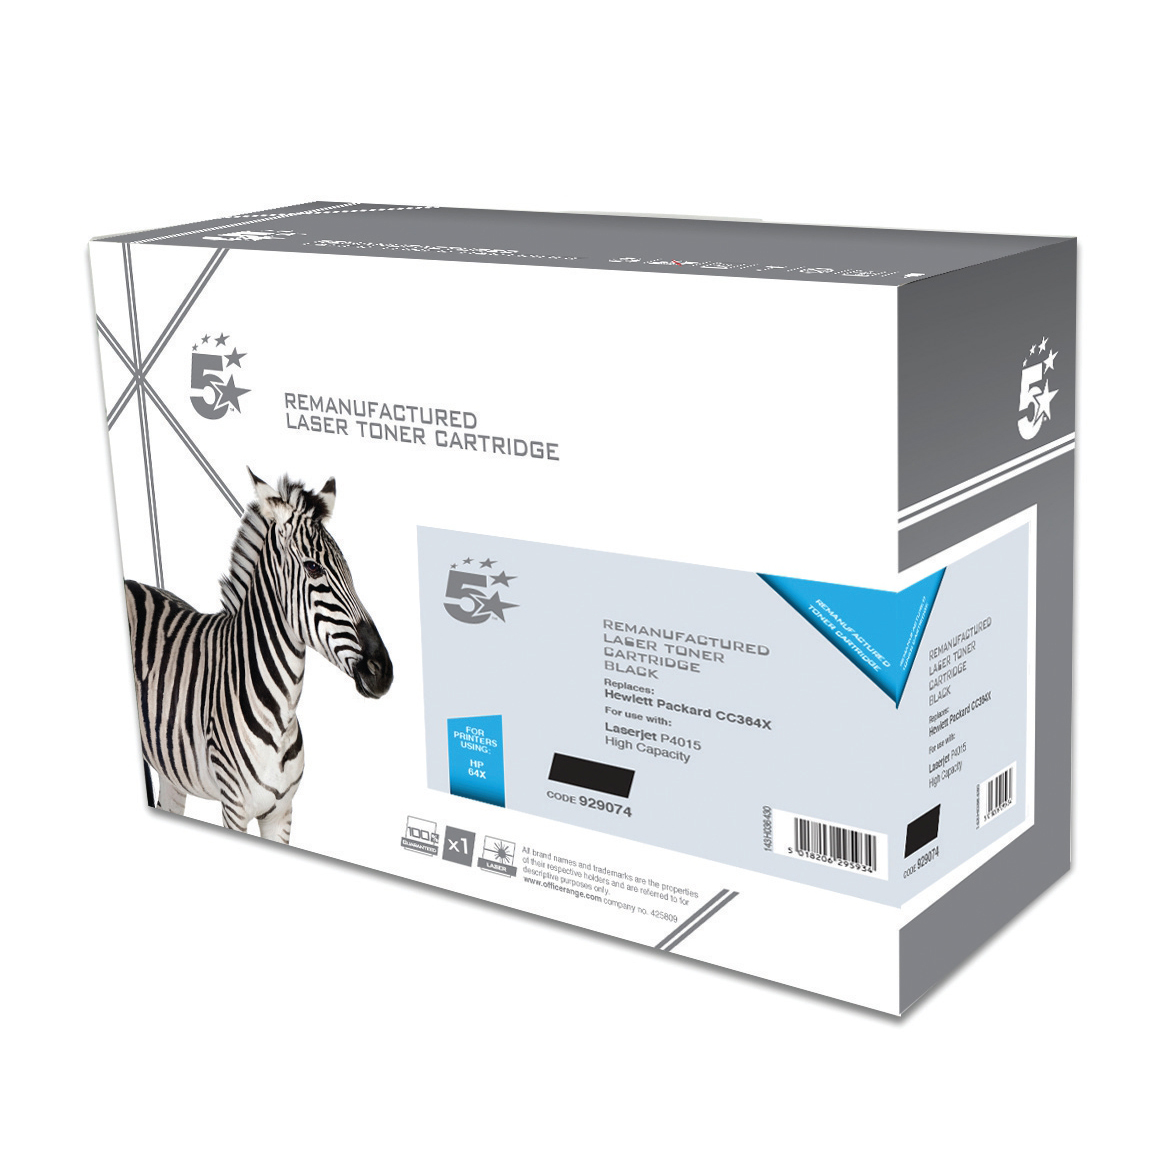 5 Star Office Remanufactured Laser Toner Cartridge HY 24000pp Black [HP 64X CC364X Alternative]